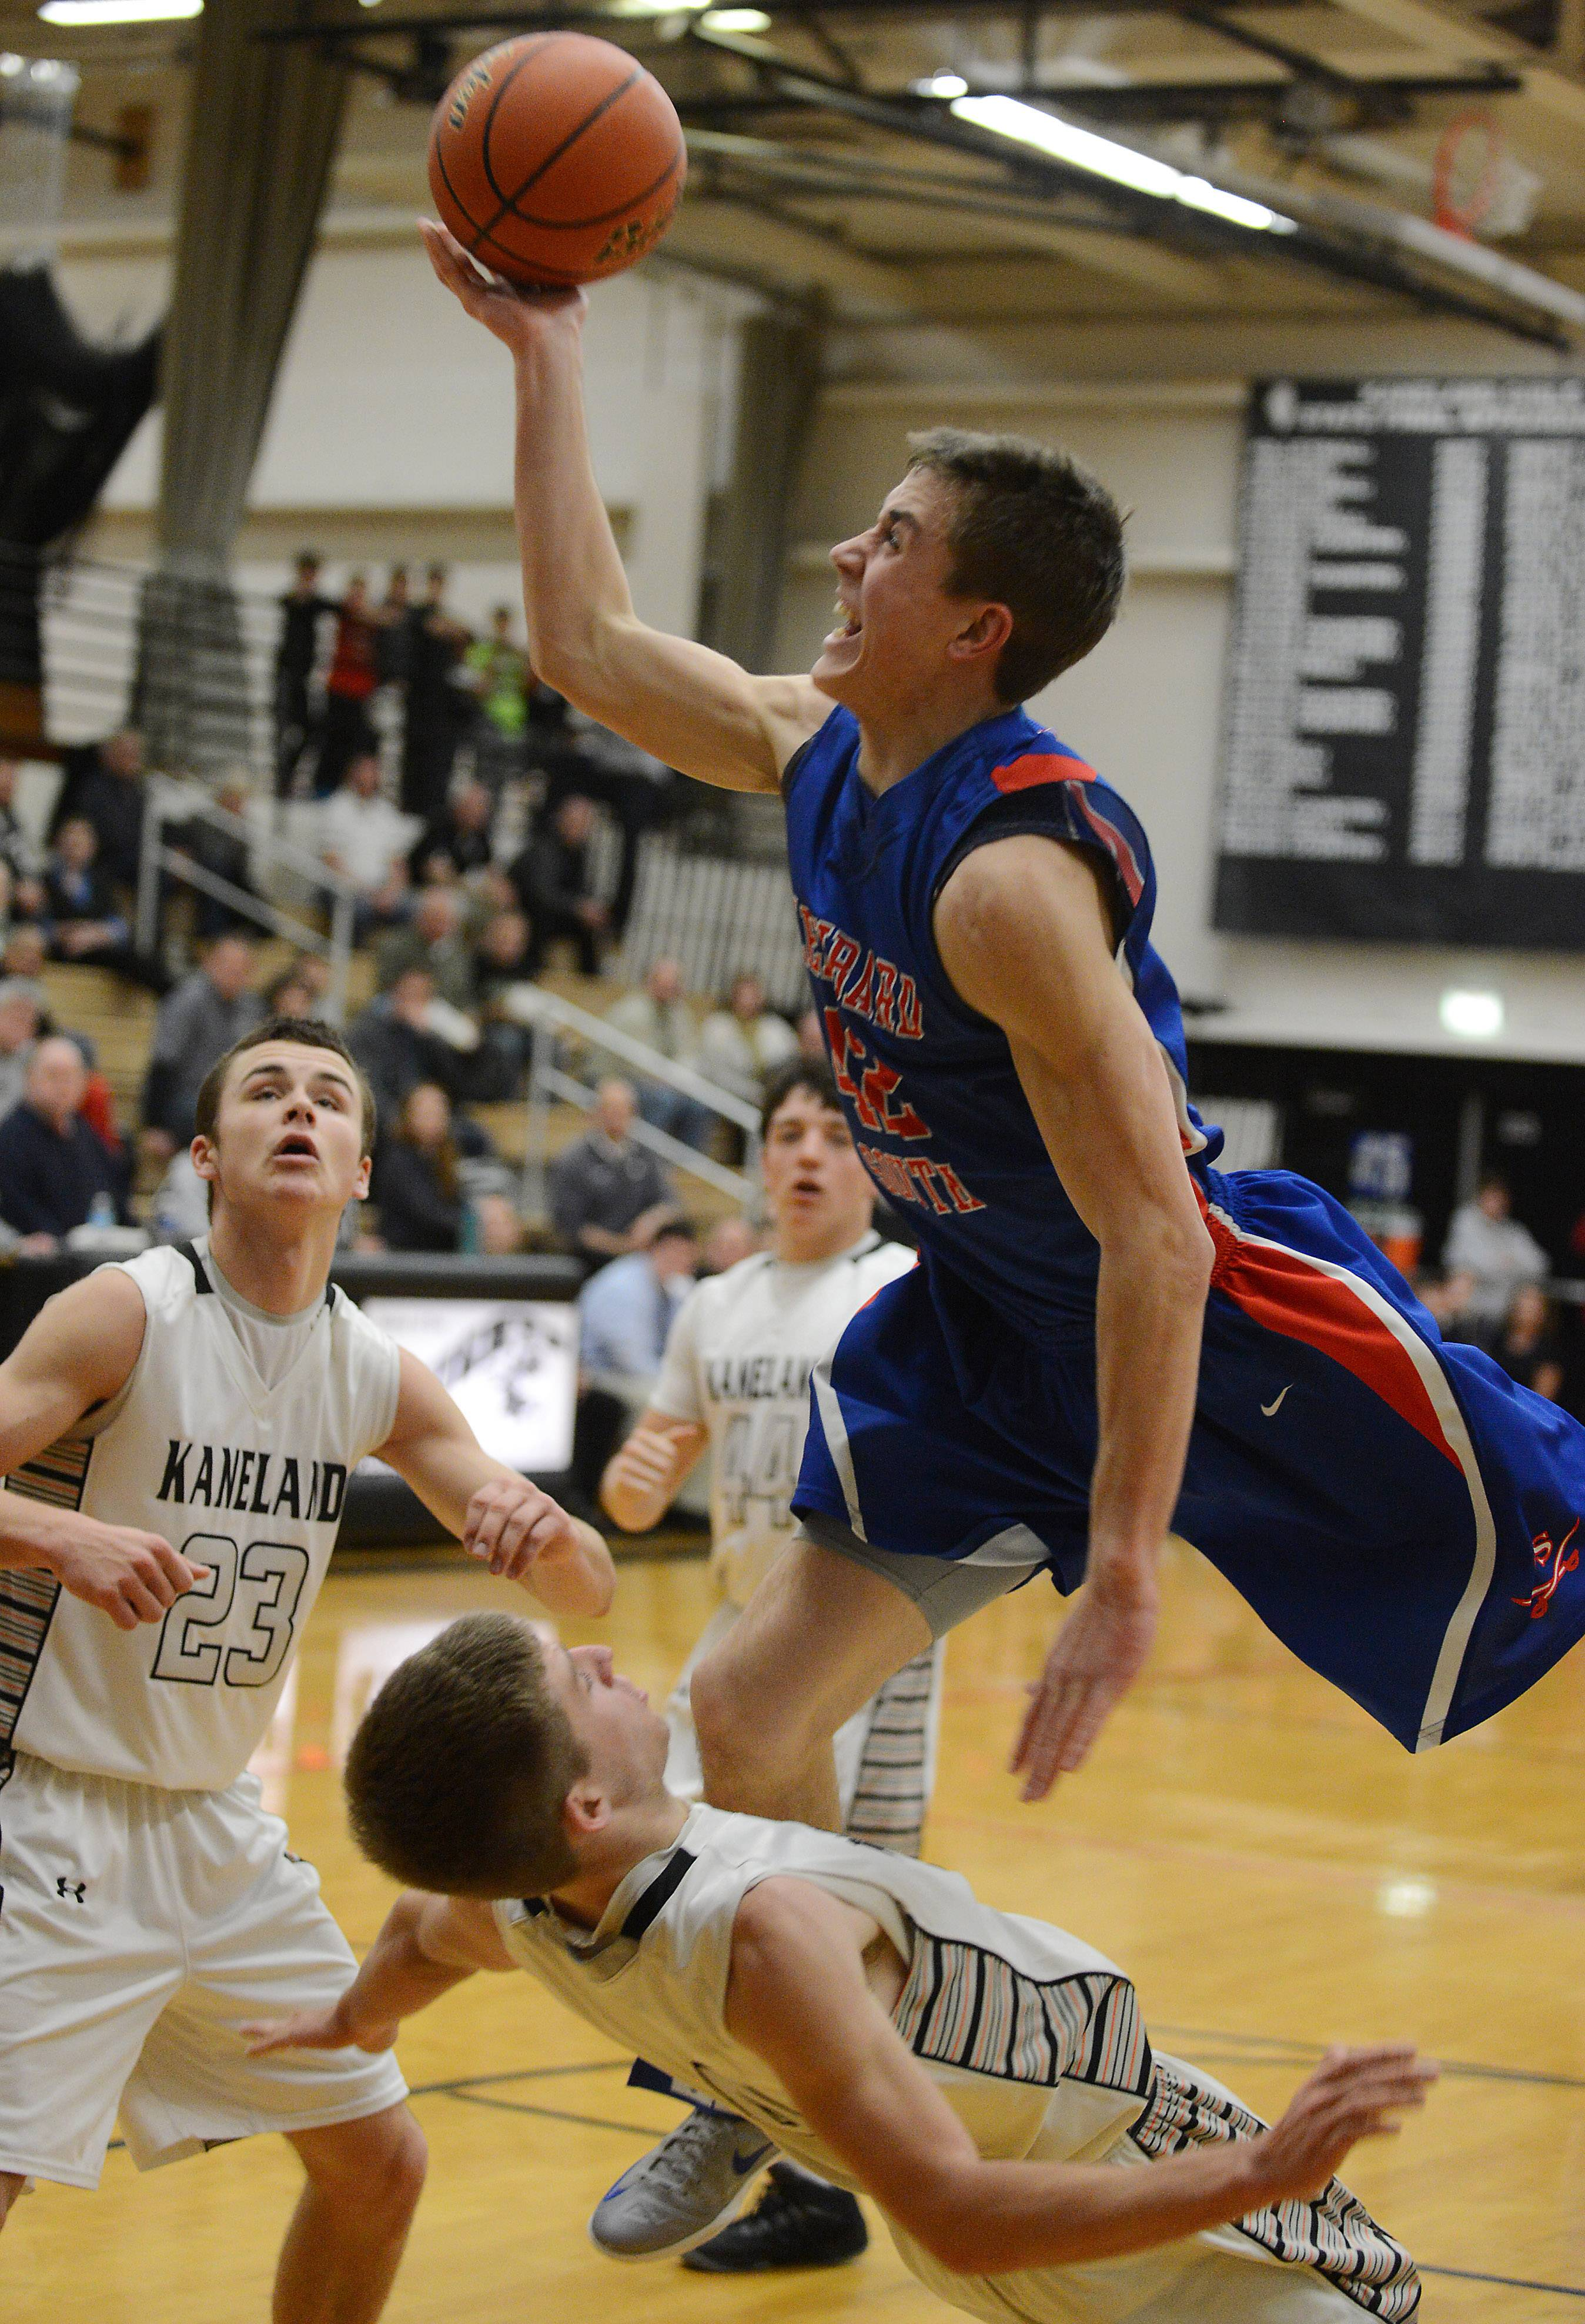 Kaneland's Drew David draws a charge on Glenbard South's Billy Bair.